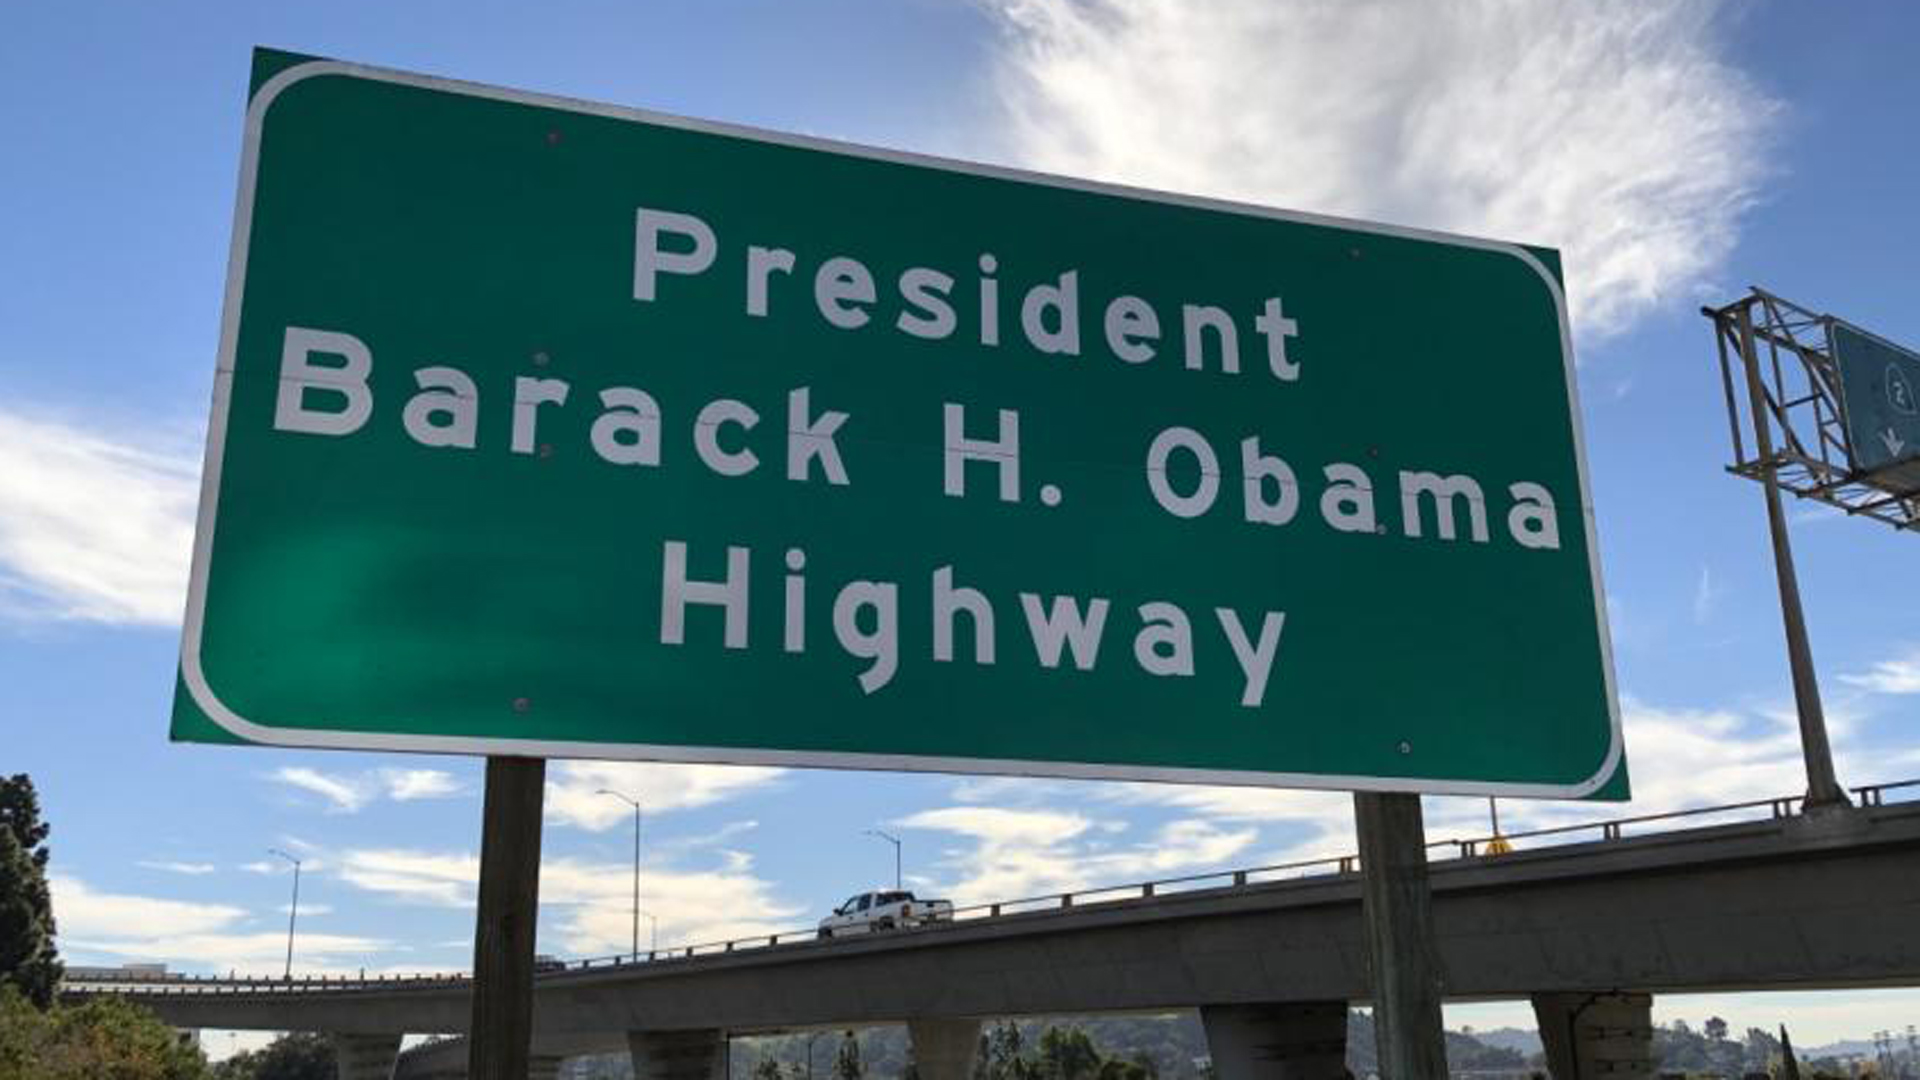 A newly installed sign renaming a portion of the 134 Freeway after Barack Obama in a photo posted to Sen. Anthony J. Portantino's website on Dec. 20, 2018.